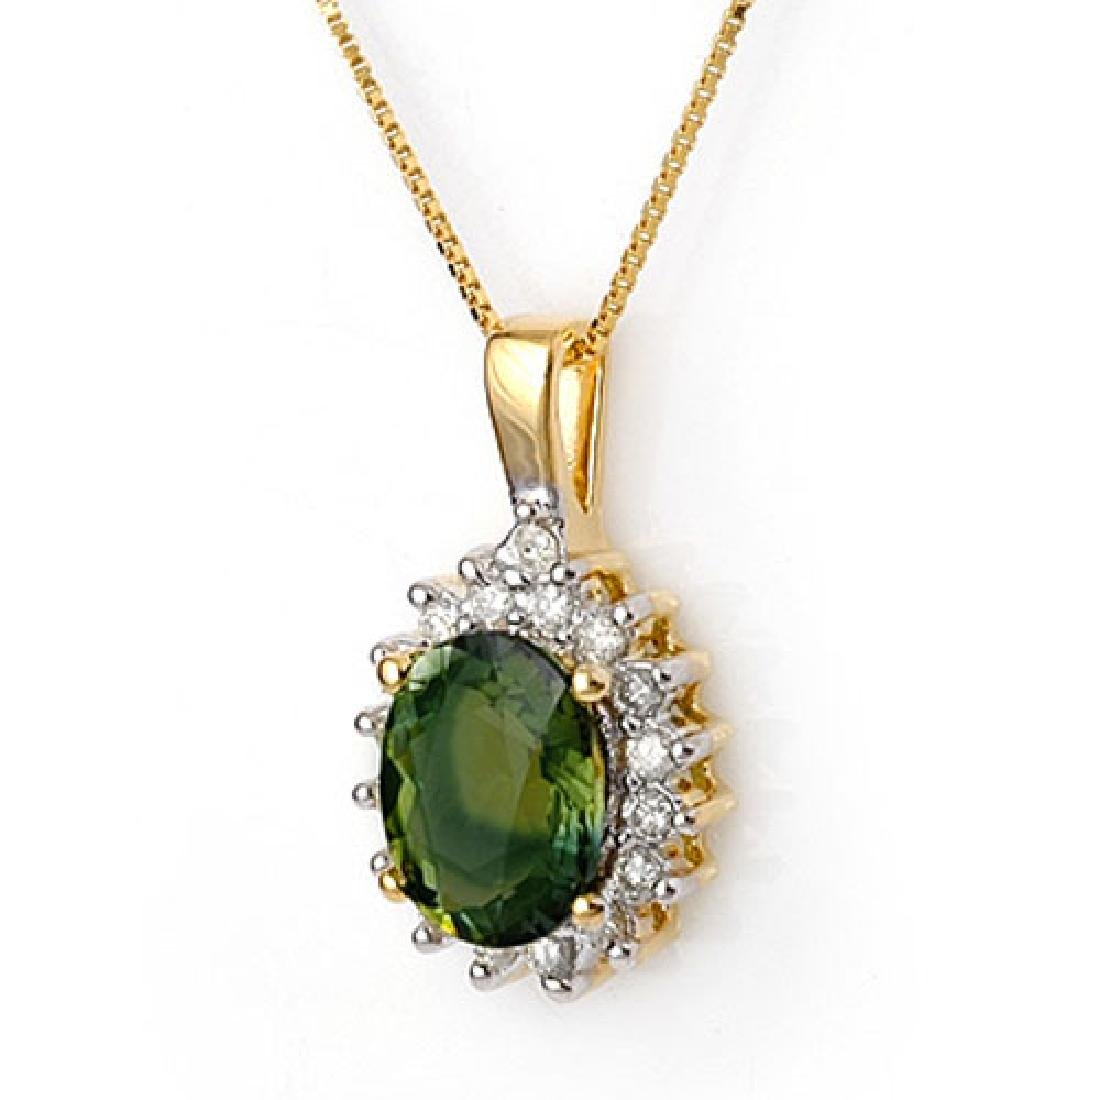 3.45 CTW Green Tourmaline & Diamond Necklace 14K Yellow